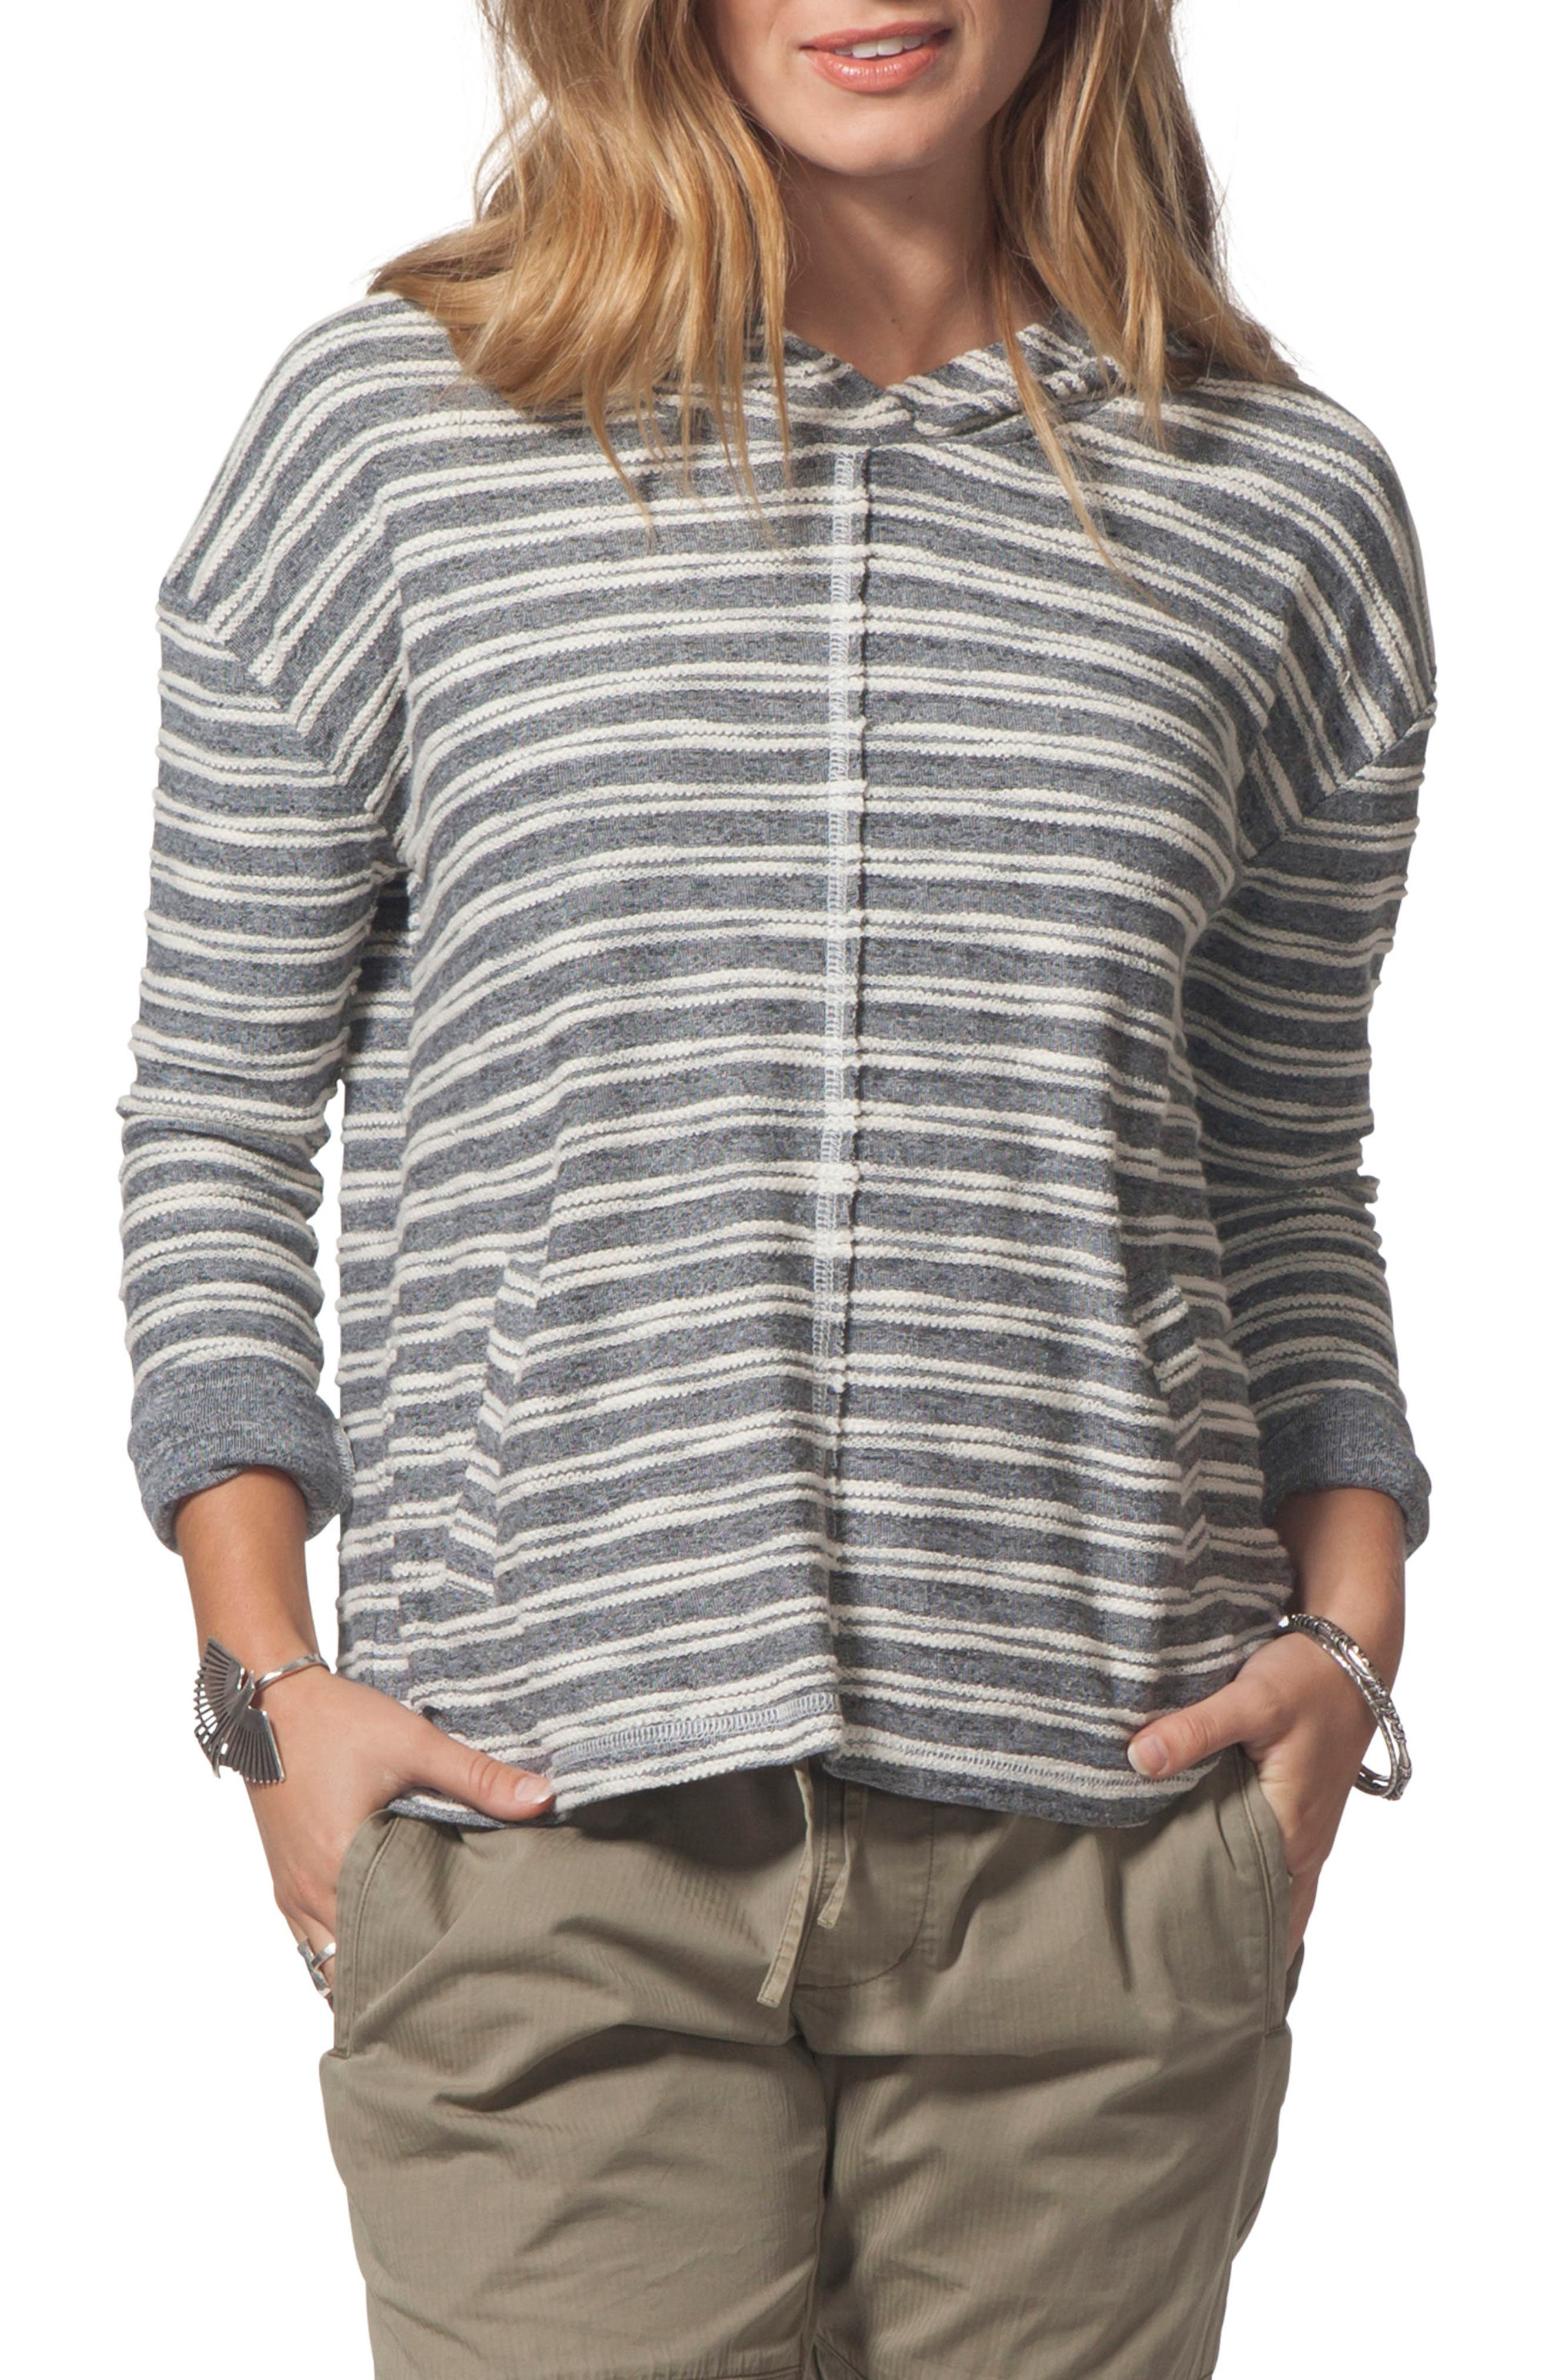 Next Move Stripe Hooded Pullover,                         Main,                         color, 001